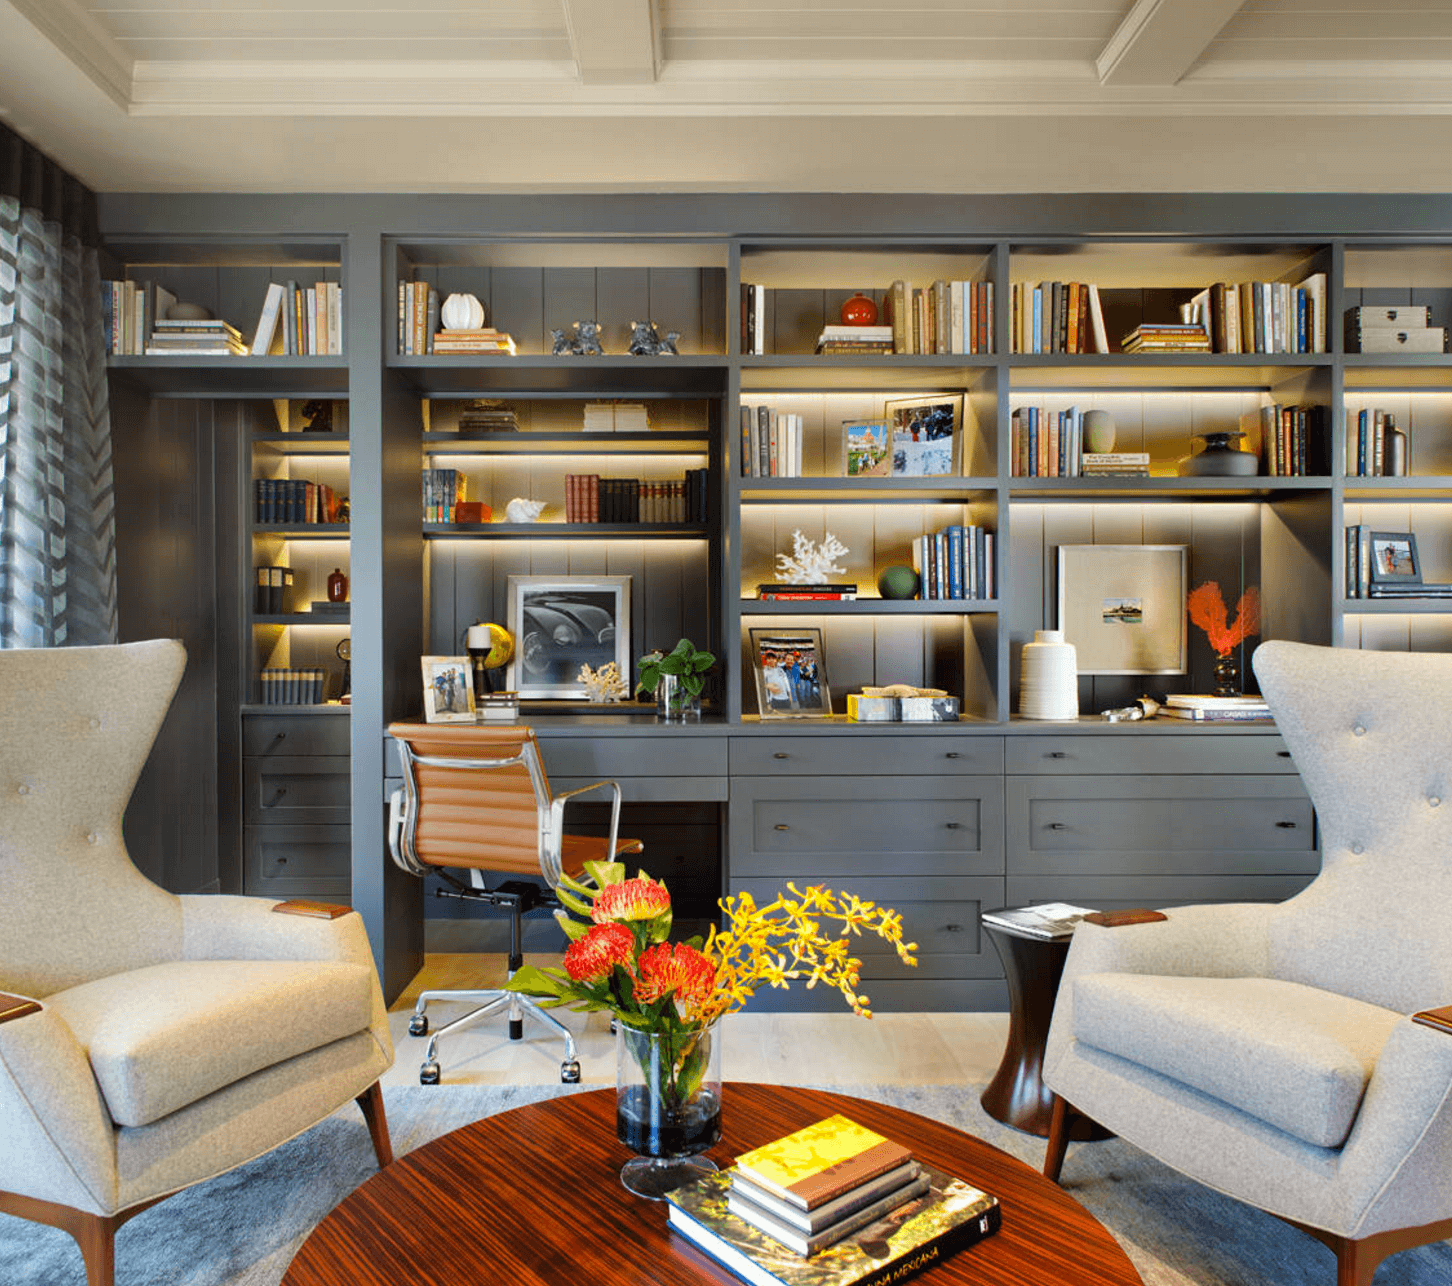 Home Design Ideas: 4 Modern And Chic Ideas For Your Home Office